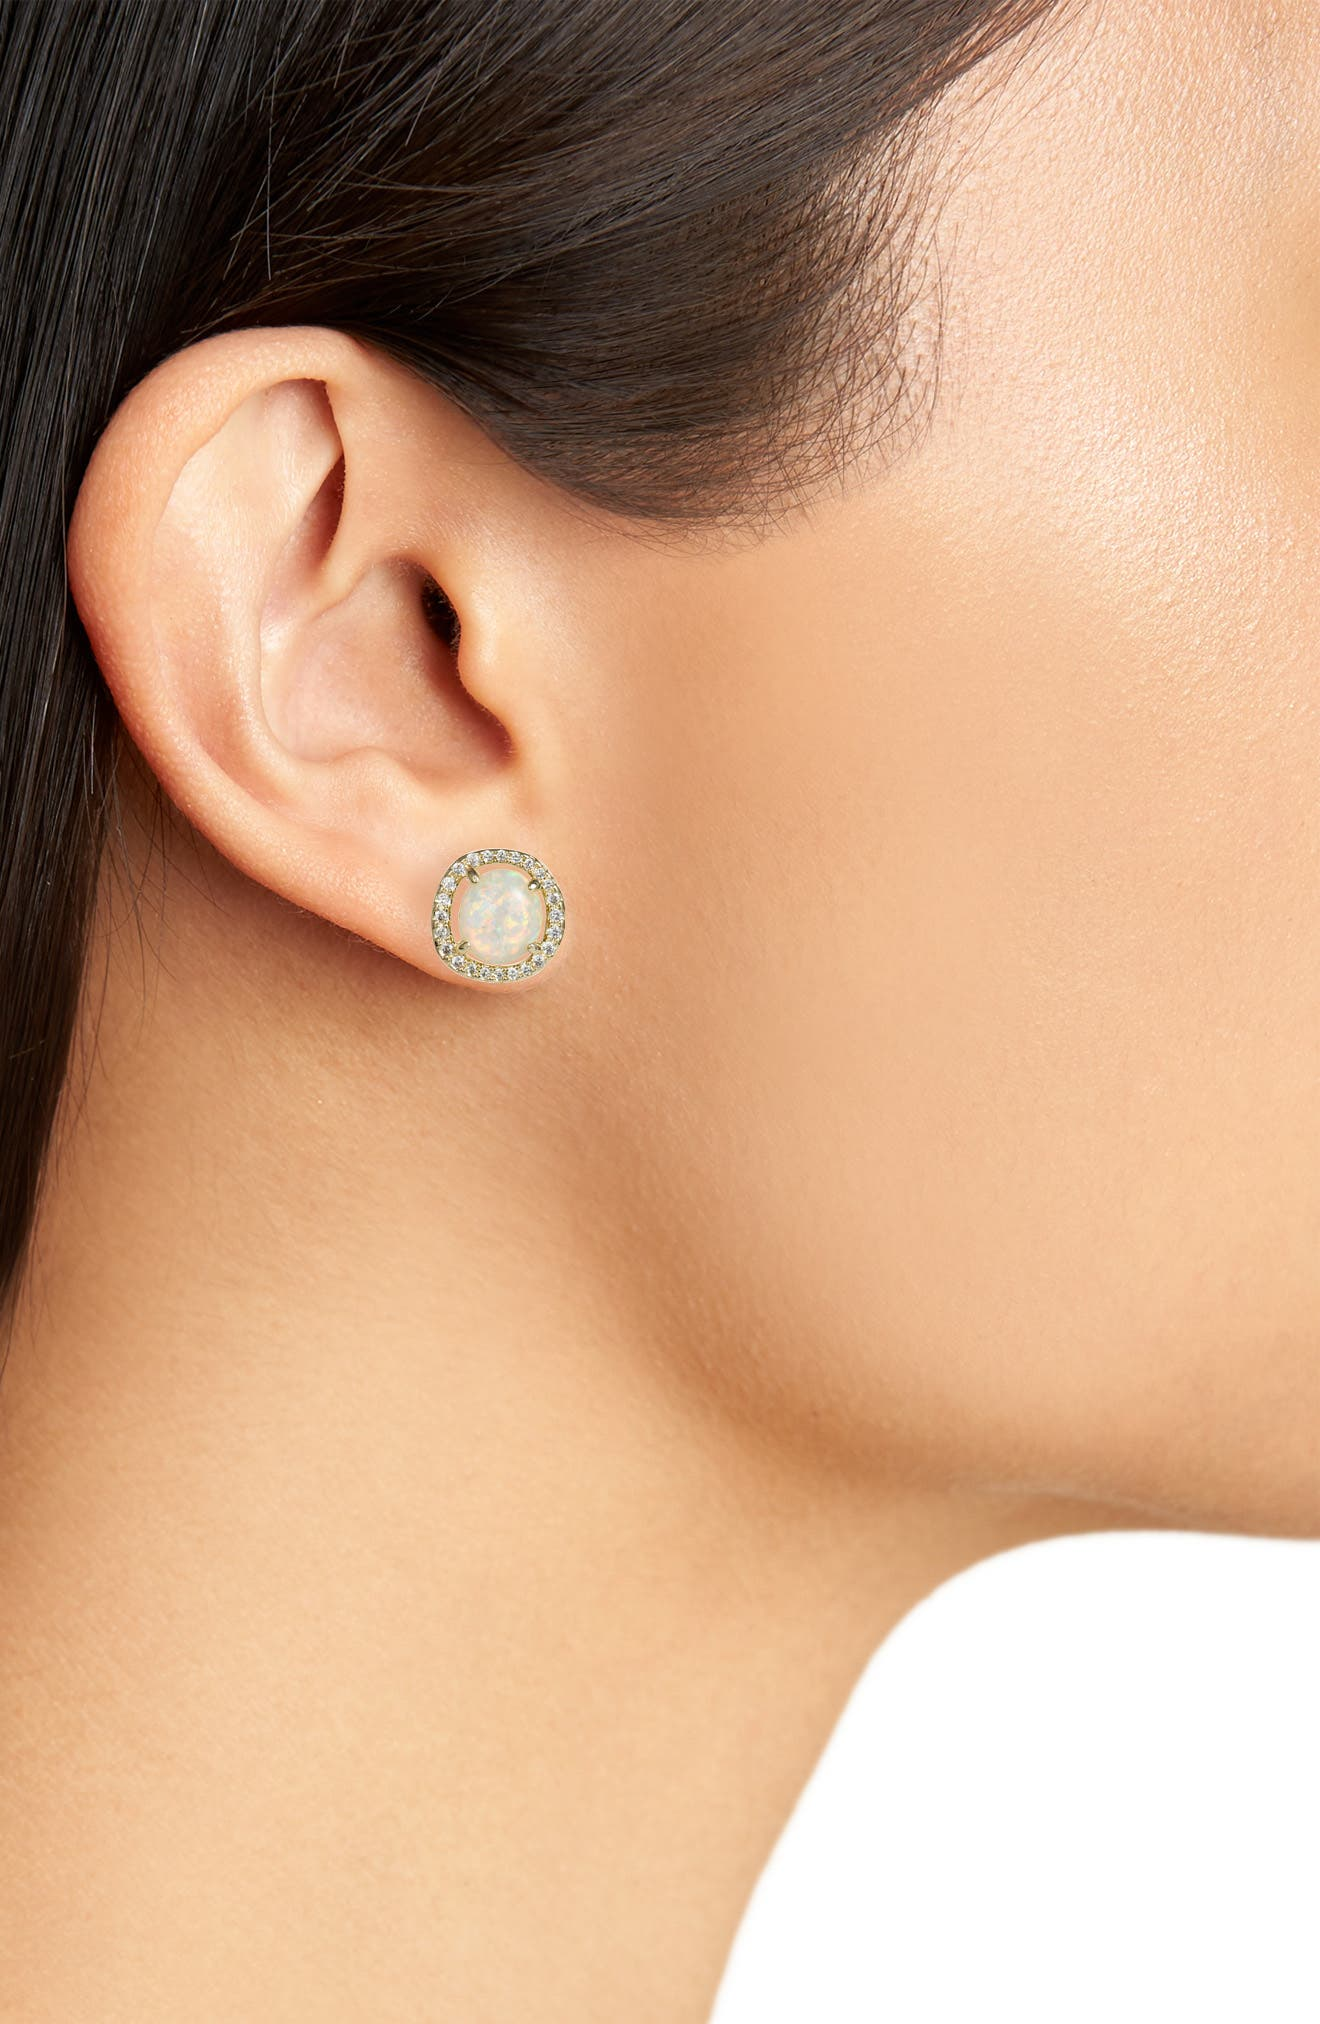 Sarah Louise Opal Stud Earrings,                             Alternate thumbnail 2, color,                             White Opal/ Gold